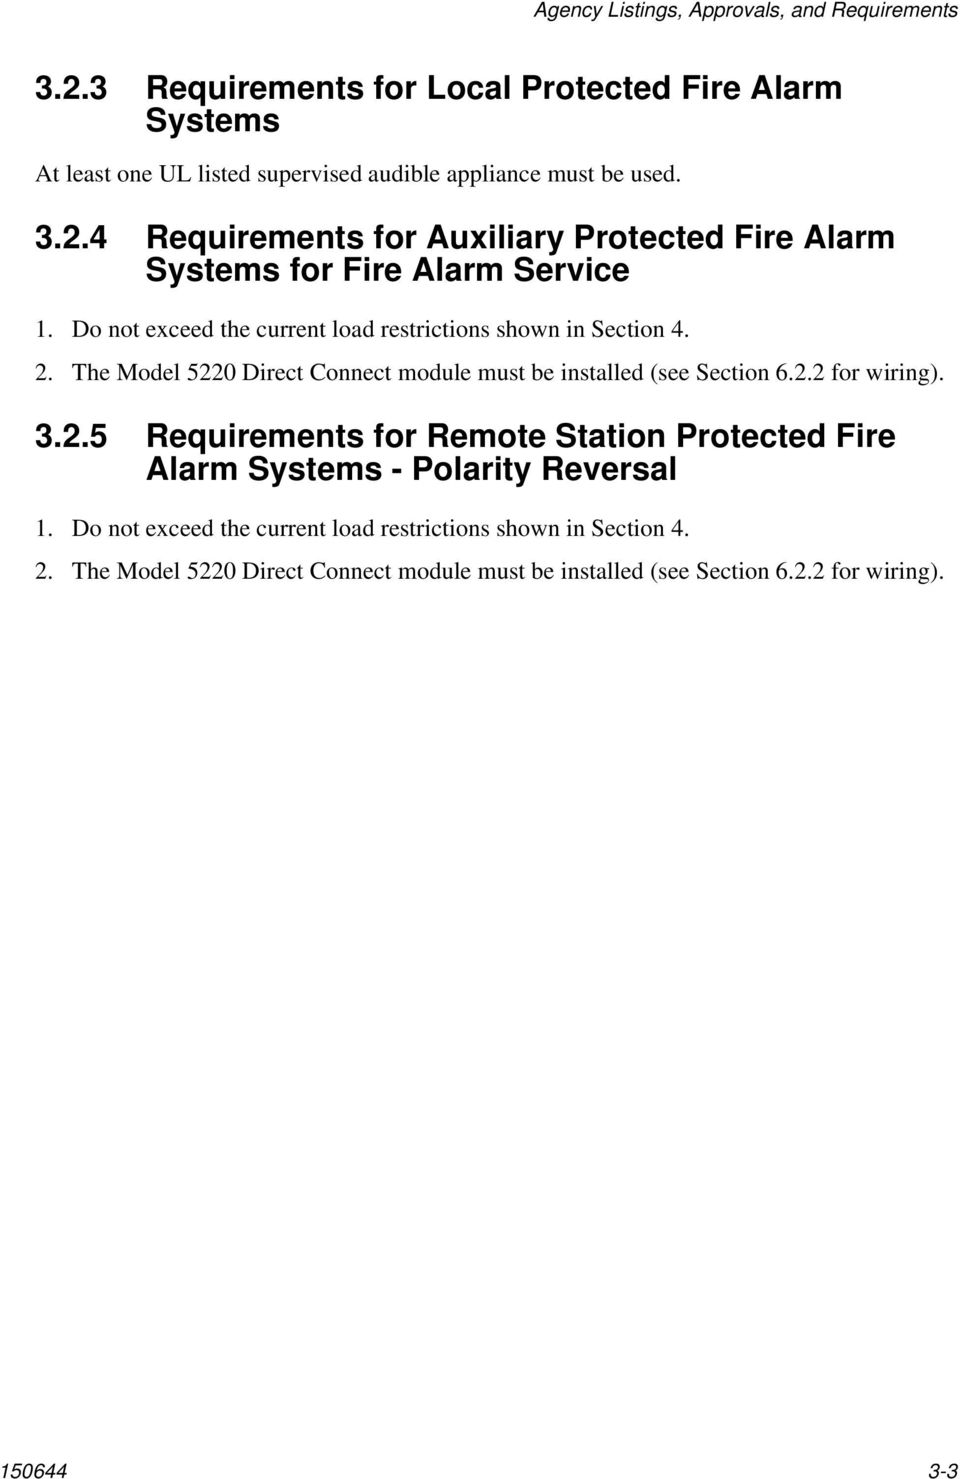 Model Installation And Operation Manual Fire Control Communicator Wiring Alarms 4 Requirements For Auxiliary Protected Alarm Systems Service 1 Do Not